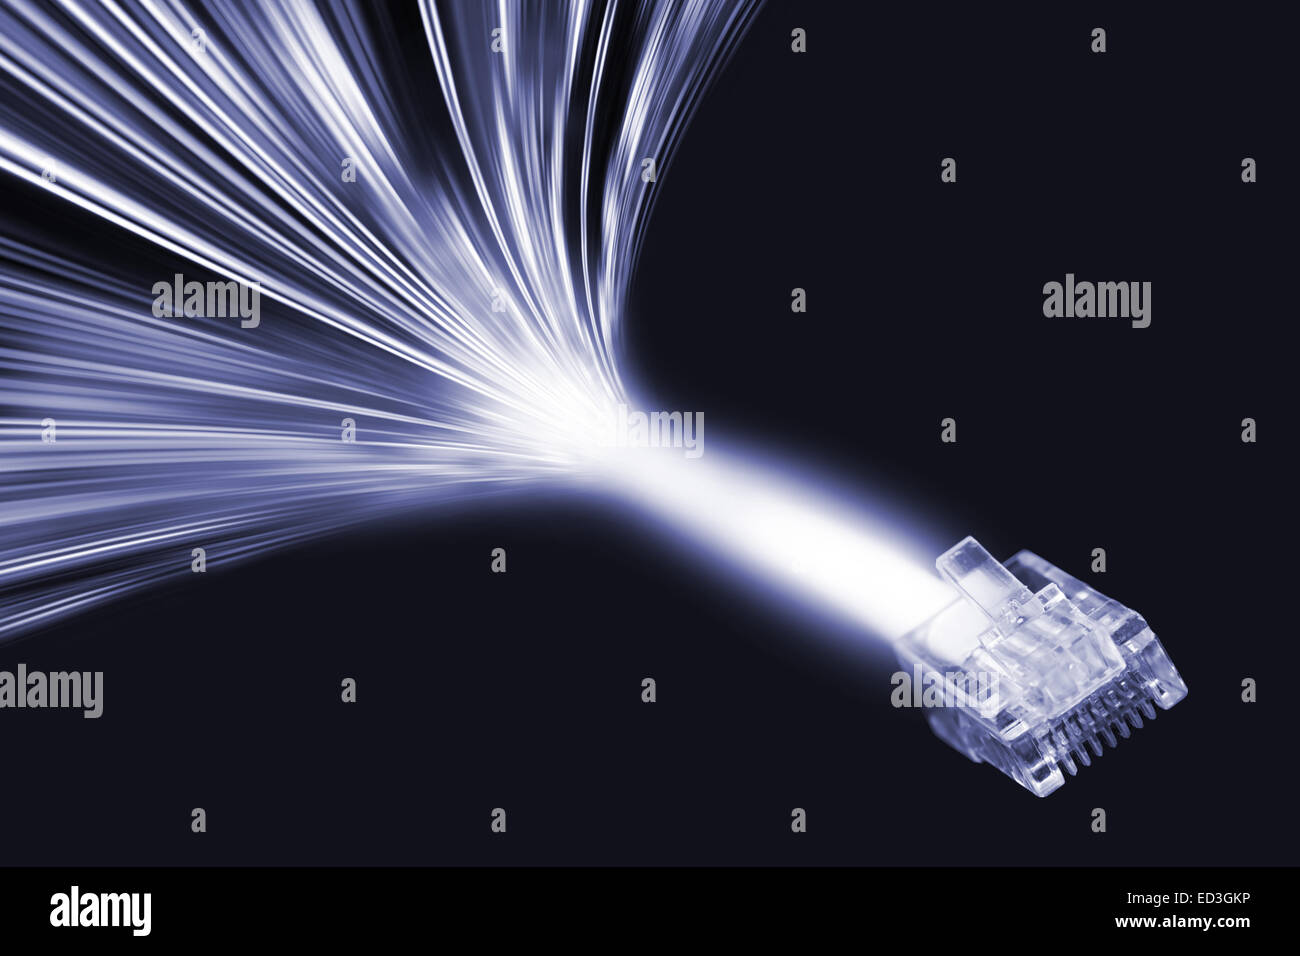 lan cable and data stream in light velocity - Stock Image